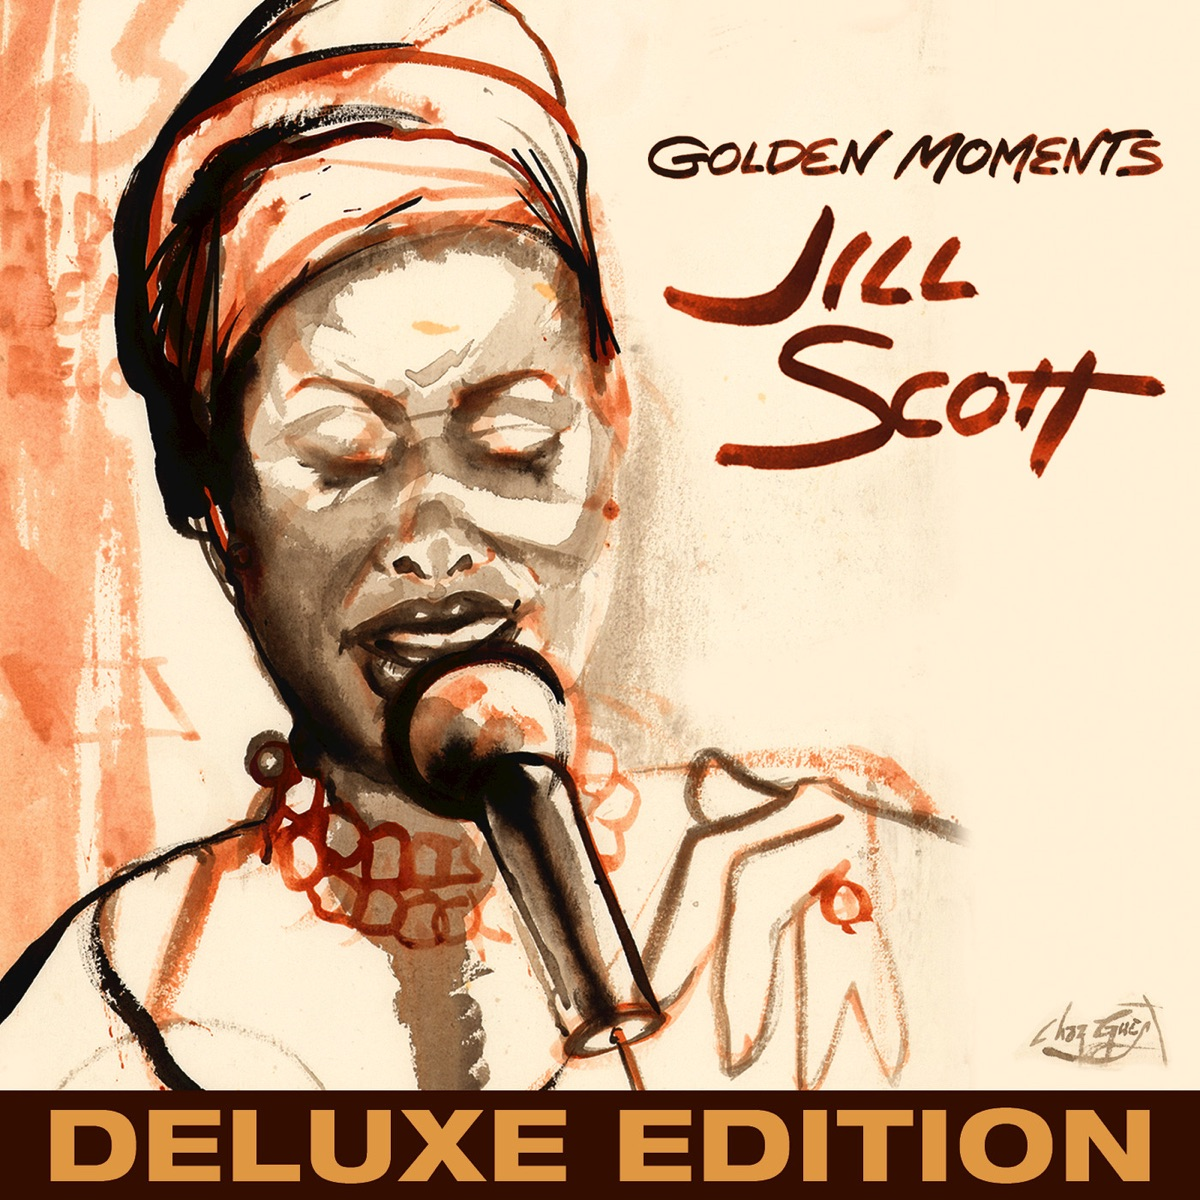 Golden Moments Deluxe Jill Scott CD cover